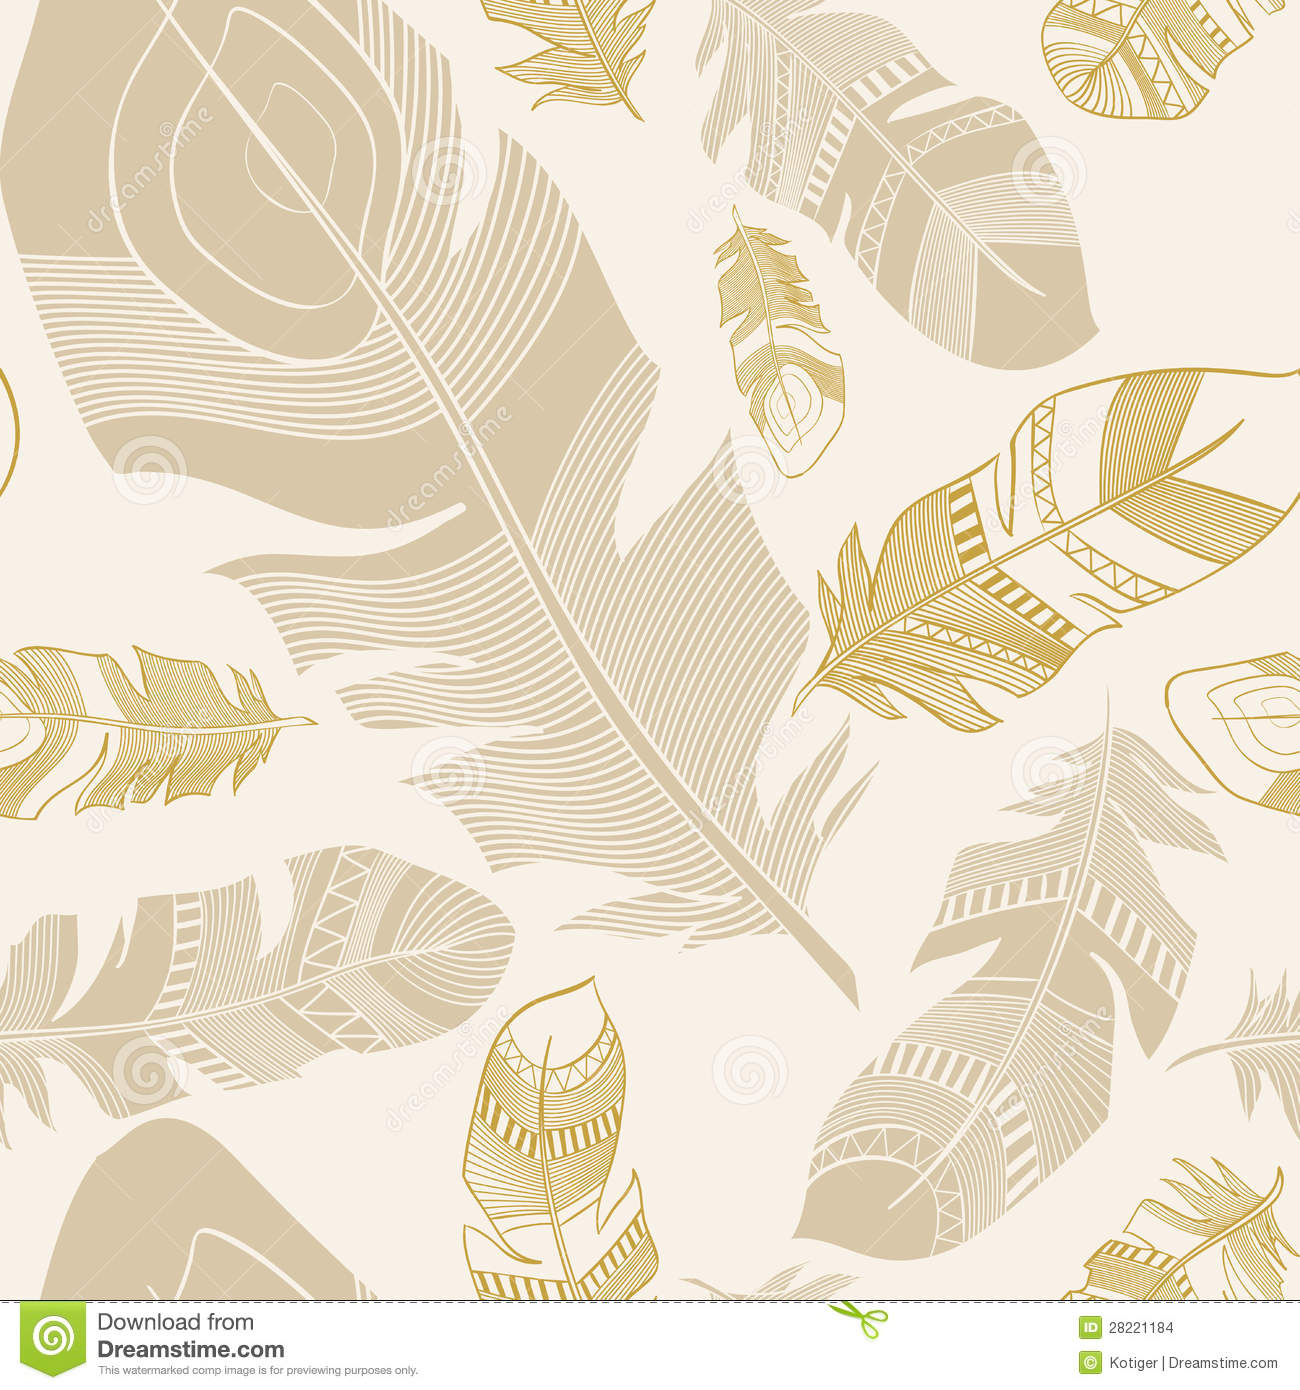 indian feather background feathers - photo #10